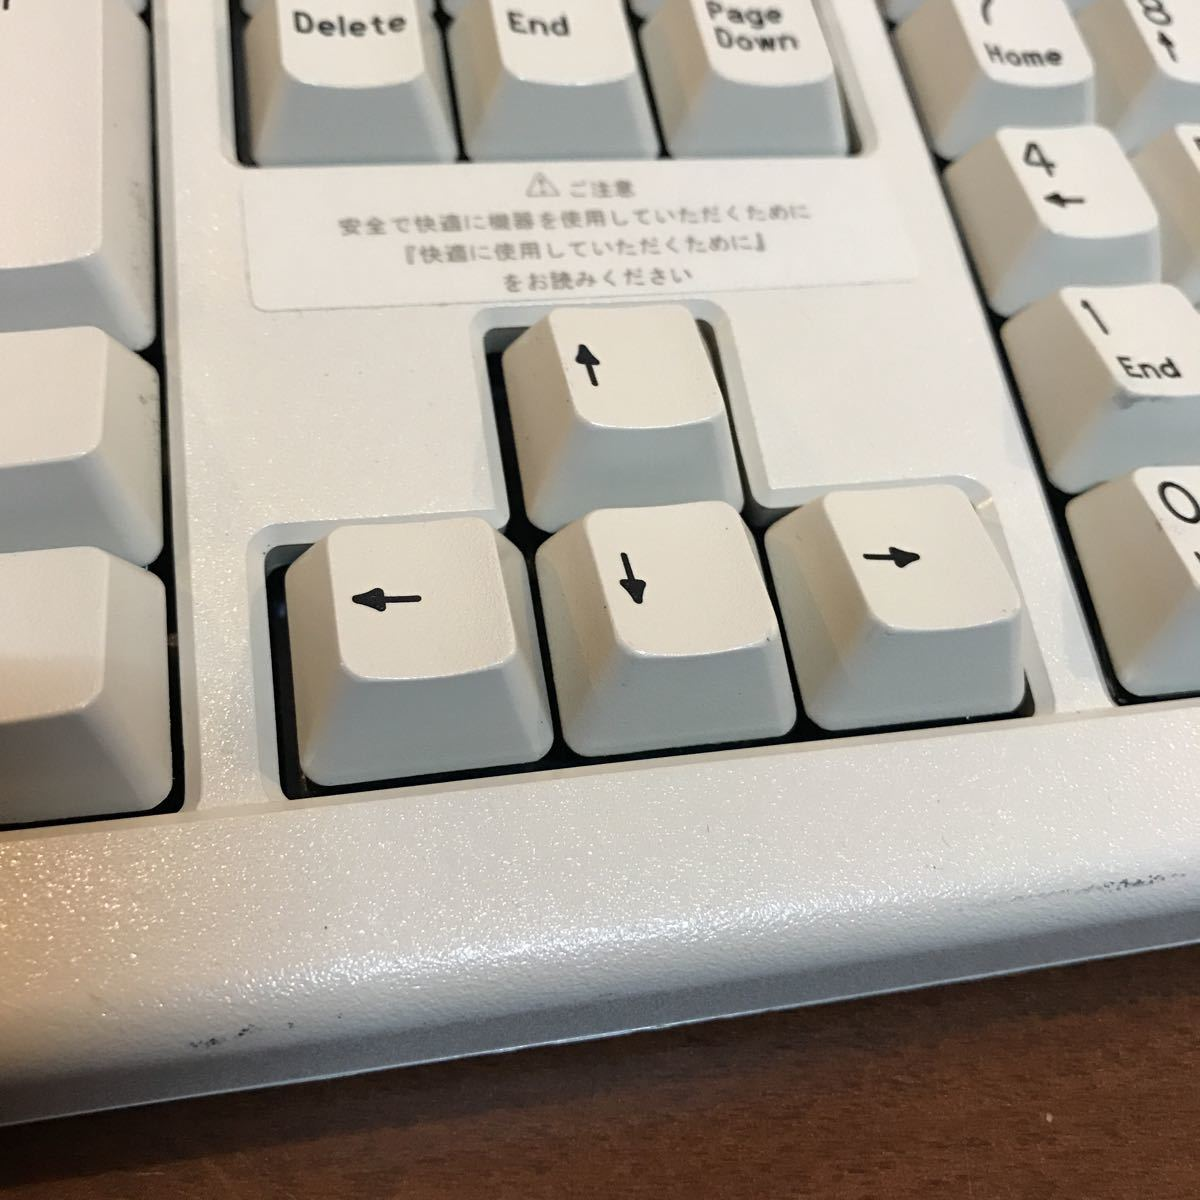 compaq vocalyst keybord made in mexico 美品のジャンク レア品?_画像5